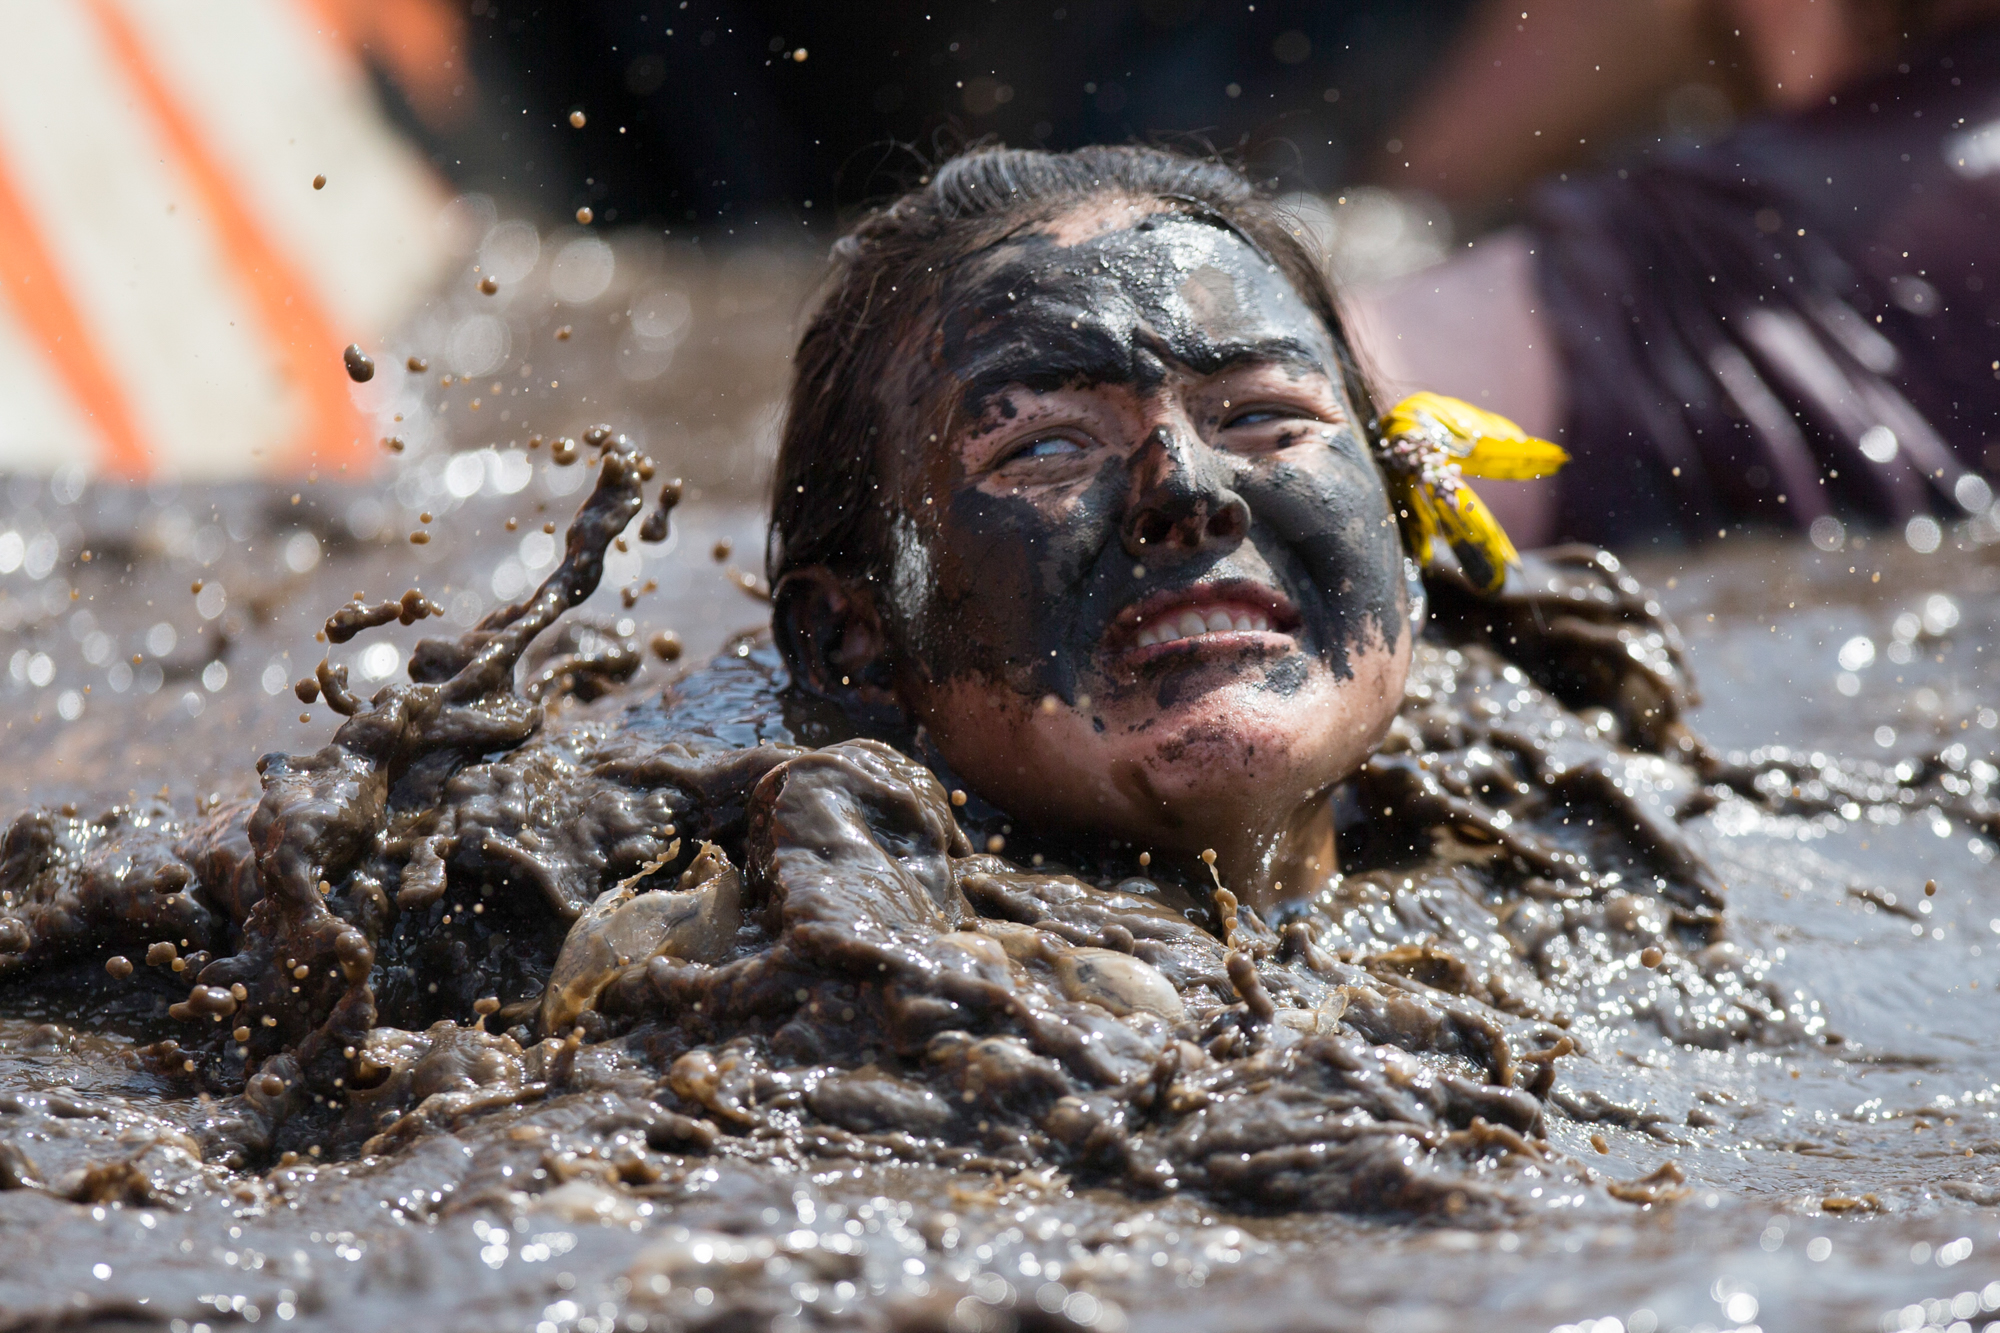 Jessica Le Noue of Luke Air Force Base, Arizona falls into the Block Ness Monster obstacle during the Tough Mudder Chicago obstacle course on Saturday, Aug. 25, 2018, at Chicago Rockford International Airport in Rockford. [SCOTT P. YATES/RRSTAR.COM STAFF]